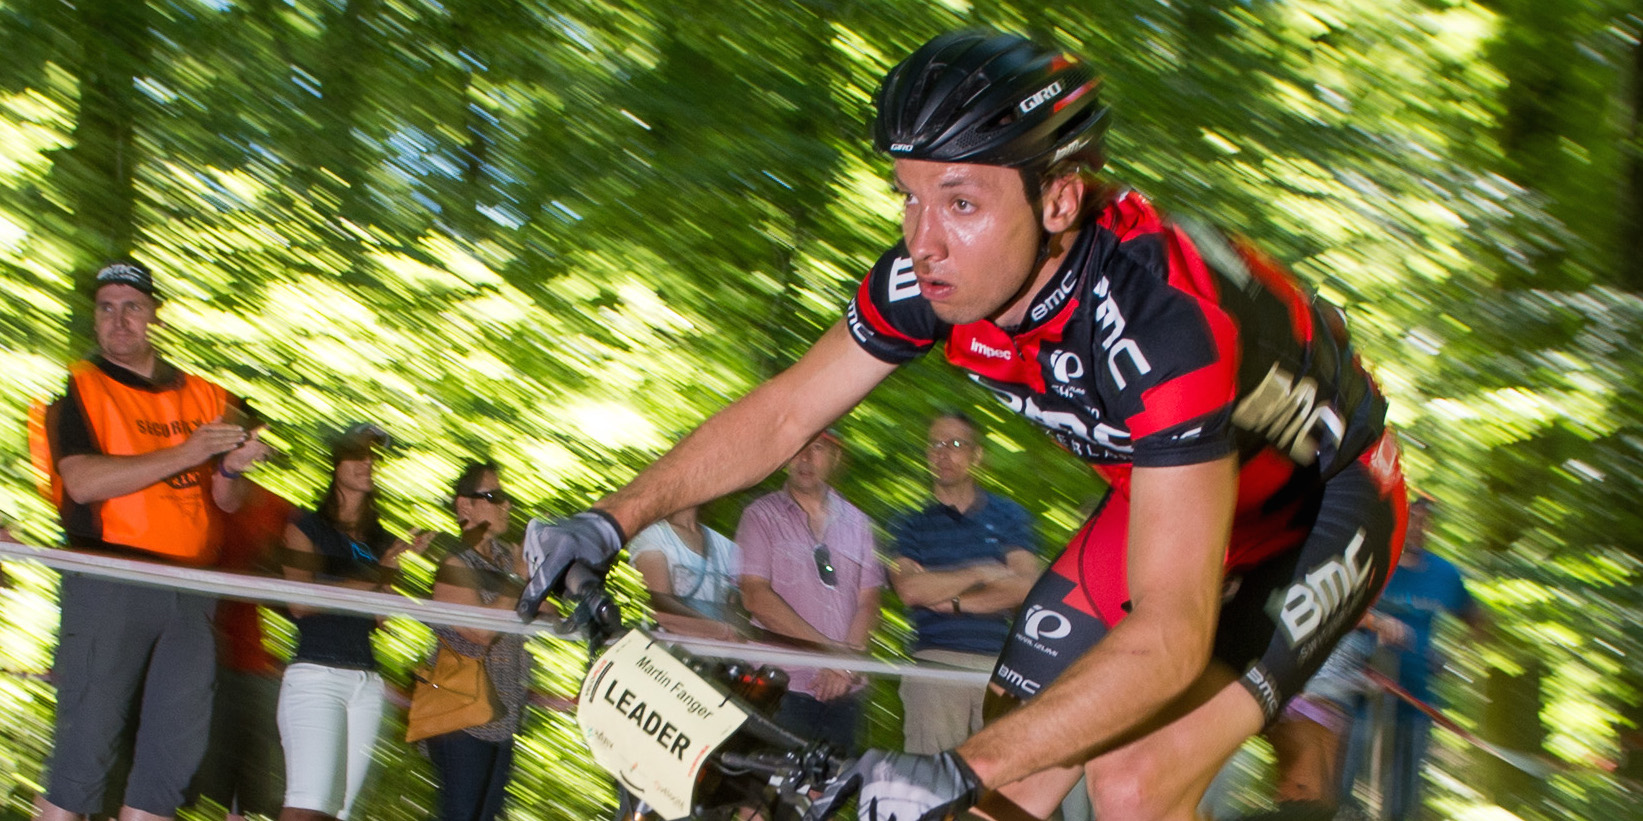 150628_1_acrossthecountry_mountainbike_by_Kuestenbrueck_SUI_Vaumarcus_XC_ME_Fange